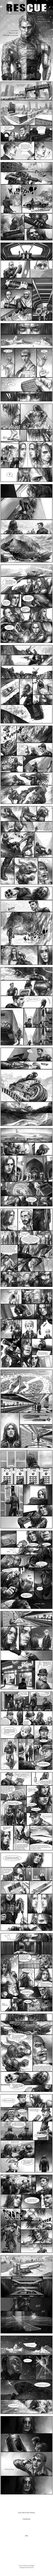 Okay, so this is a hard story to follow, but eventually, you'll be able to piece everything together and...when you are able to understand the fuck is happening...you will appreciate how creative and interesting a story it is! Not to mention beautiful to look at! ^_^ (If Marvel ever makes a movie of Bucky in his 69-year brainwash, then they should take THIS STORY as a reference). They just need to add some Winter Soldier training Black Widow and their romance and it would be PERFECT!